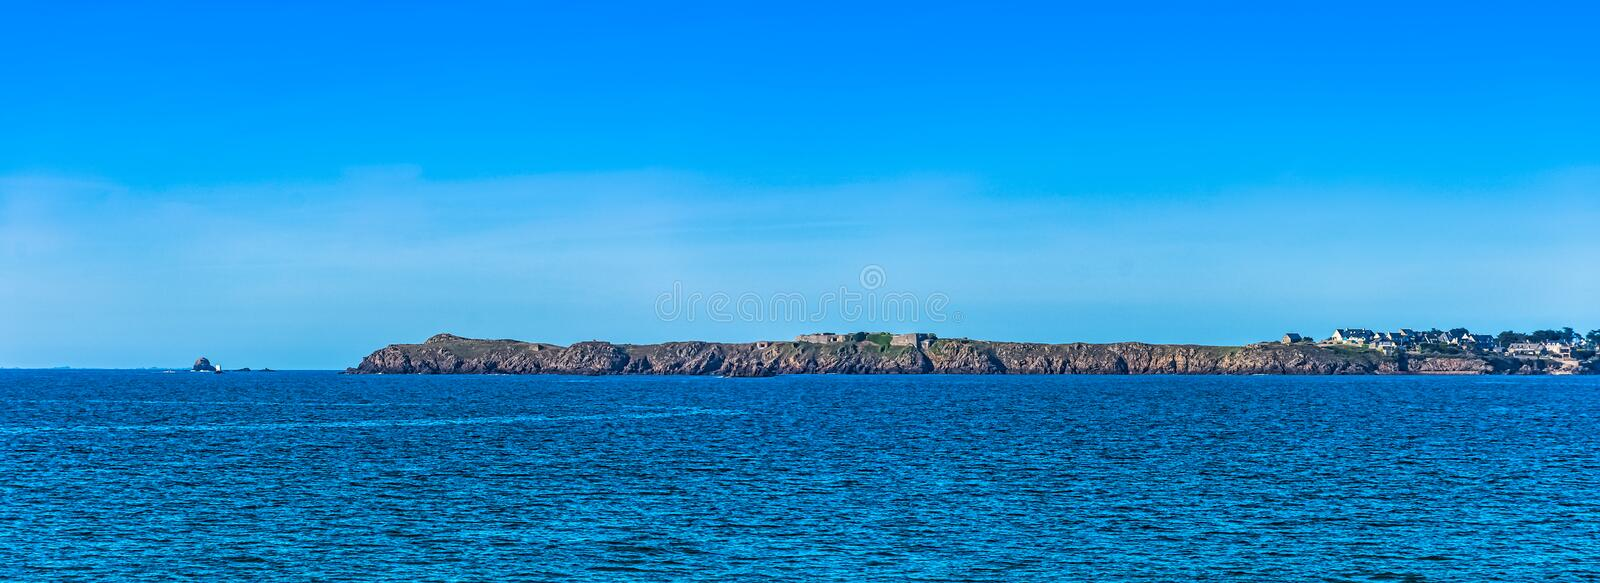 Bailiwick of Jersey known as Isle of Jersey - British island on French coast stock photos